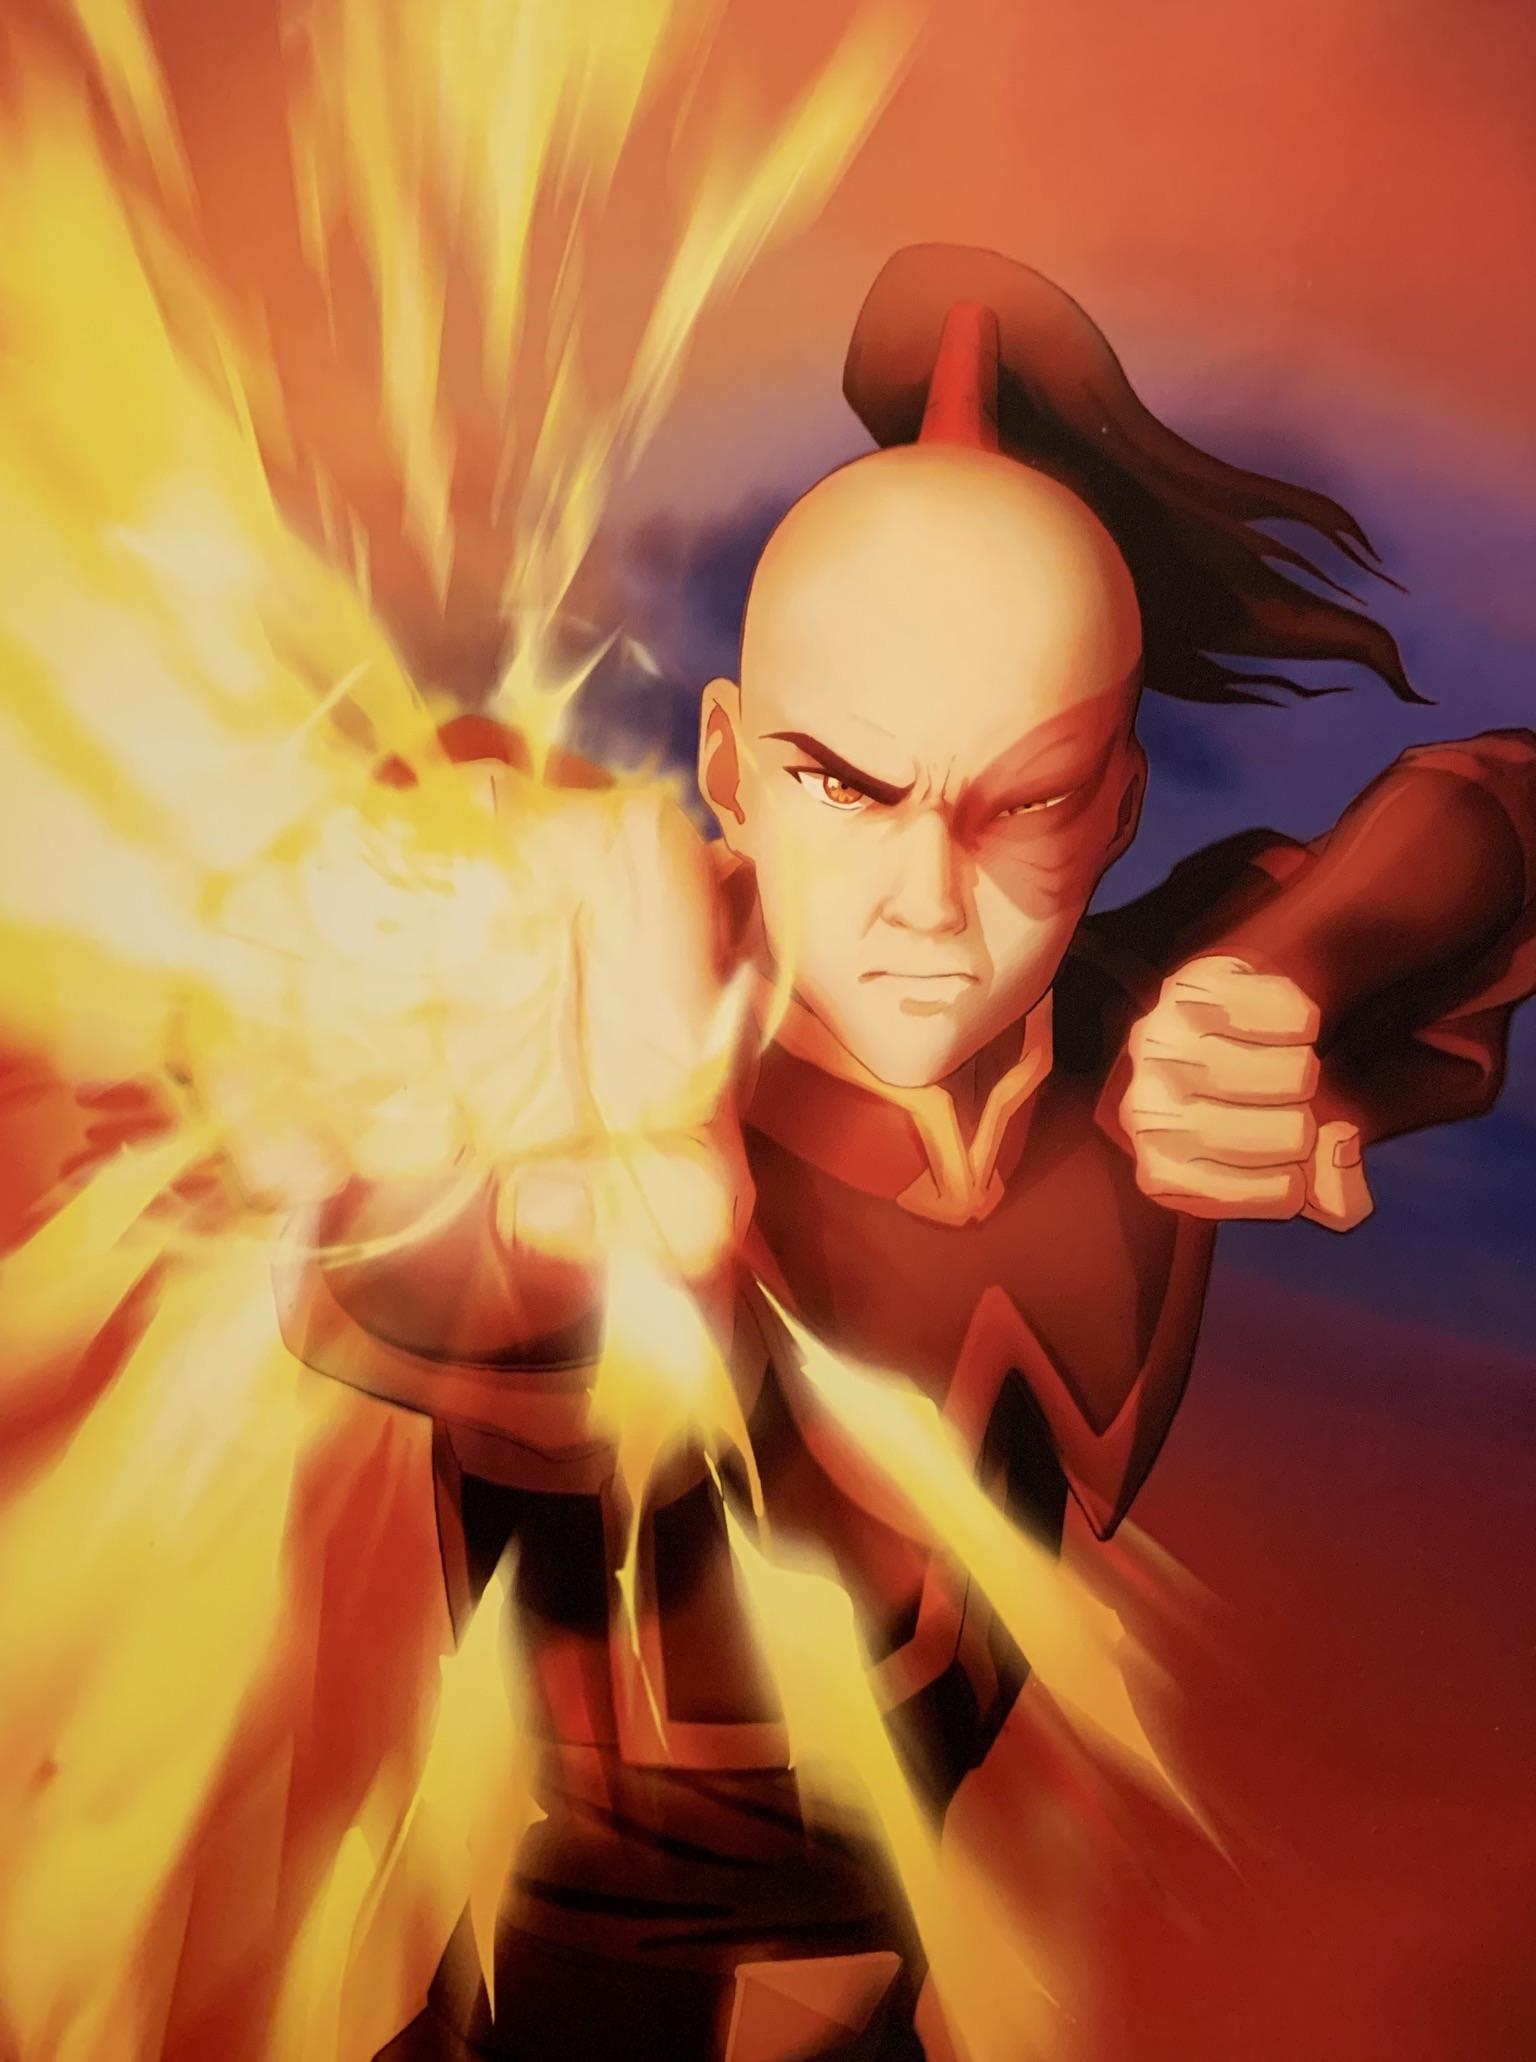 Prince Zuko bending fire in front of himself with his fire nation attire, still being seen as a villain.